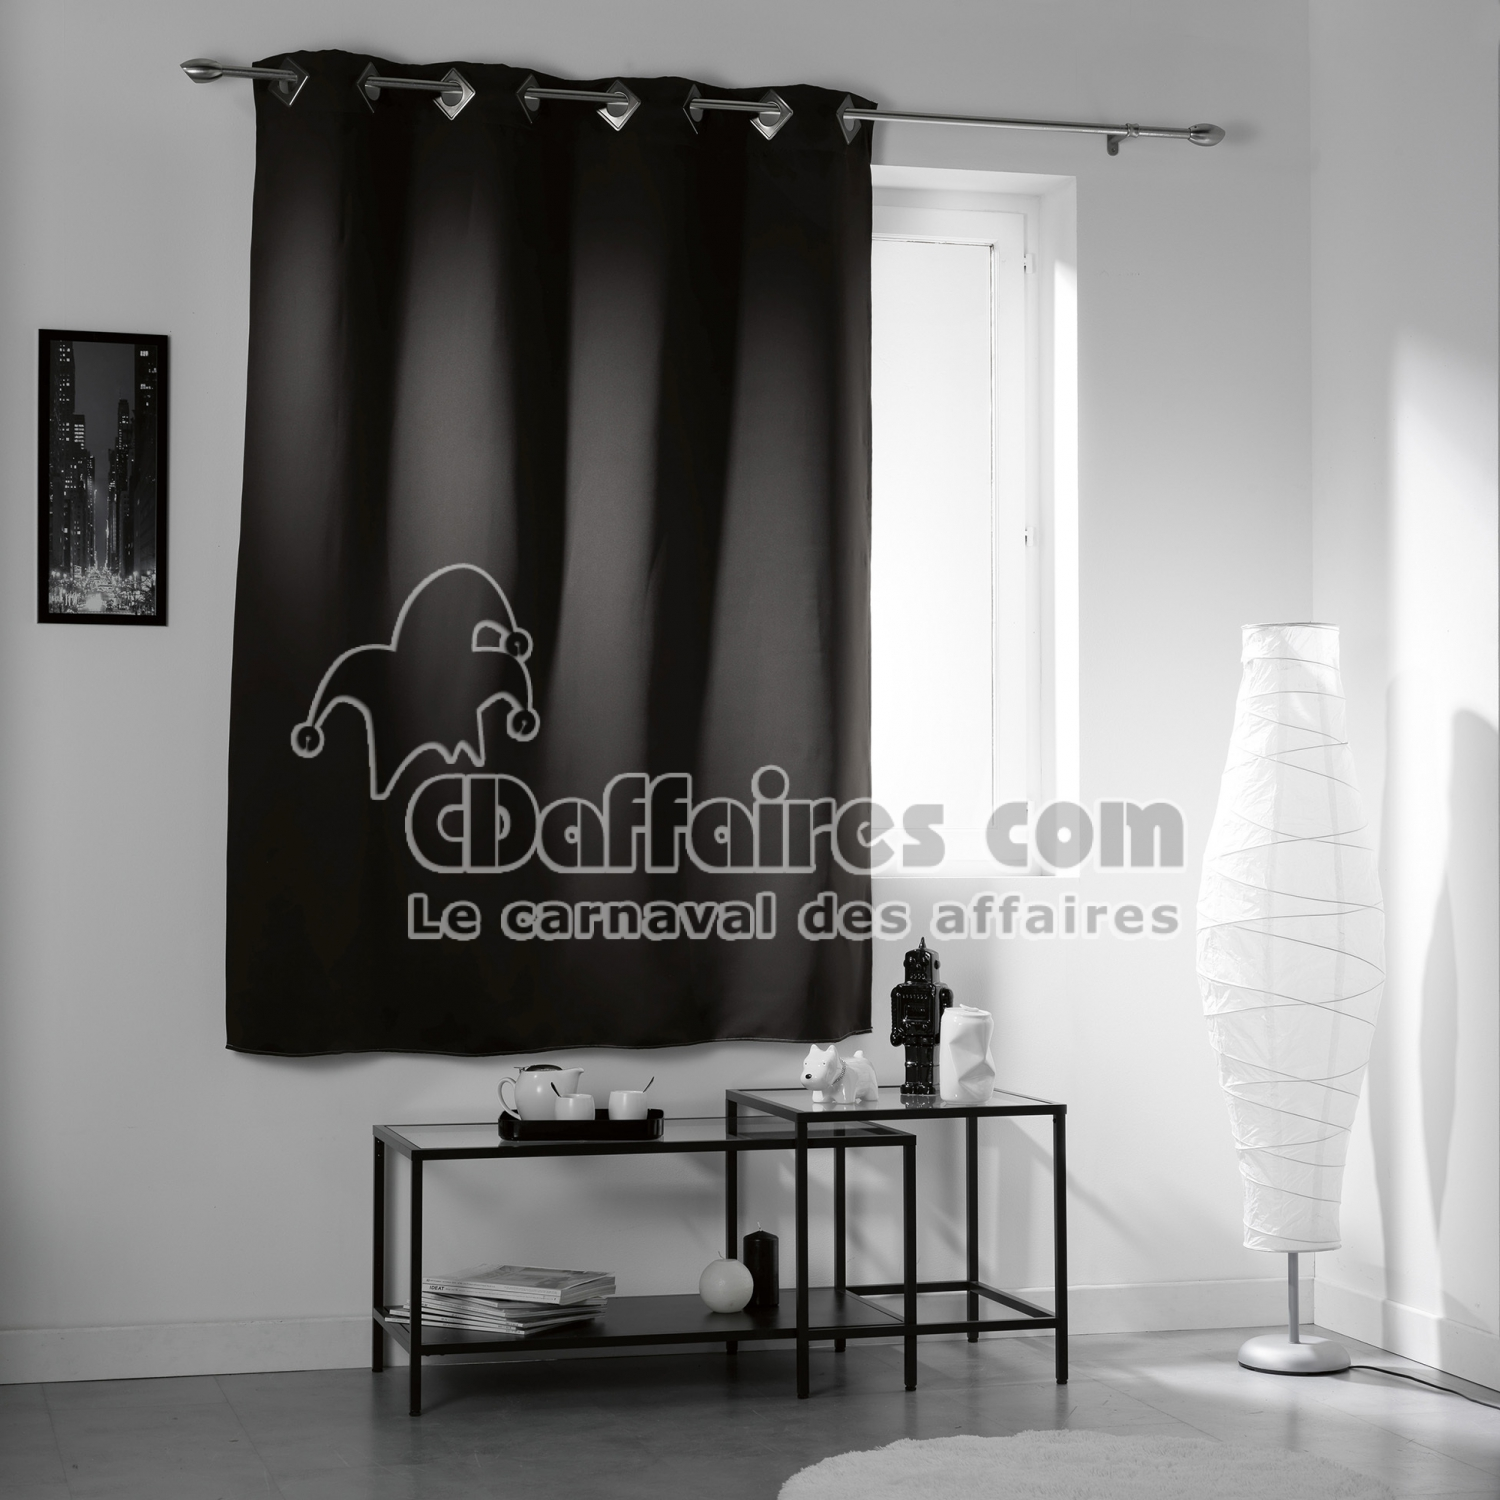 rideau a oeillets carres 140 x 180 cm occultant uni cocoon noir cdaffaires. Black Bedroom Furniture Sets. Home Design Ideas